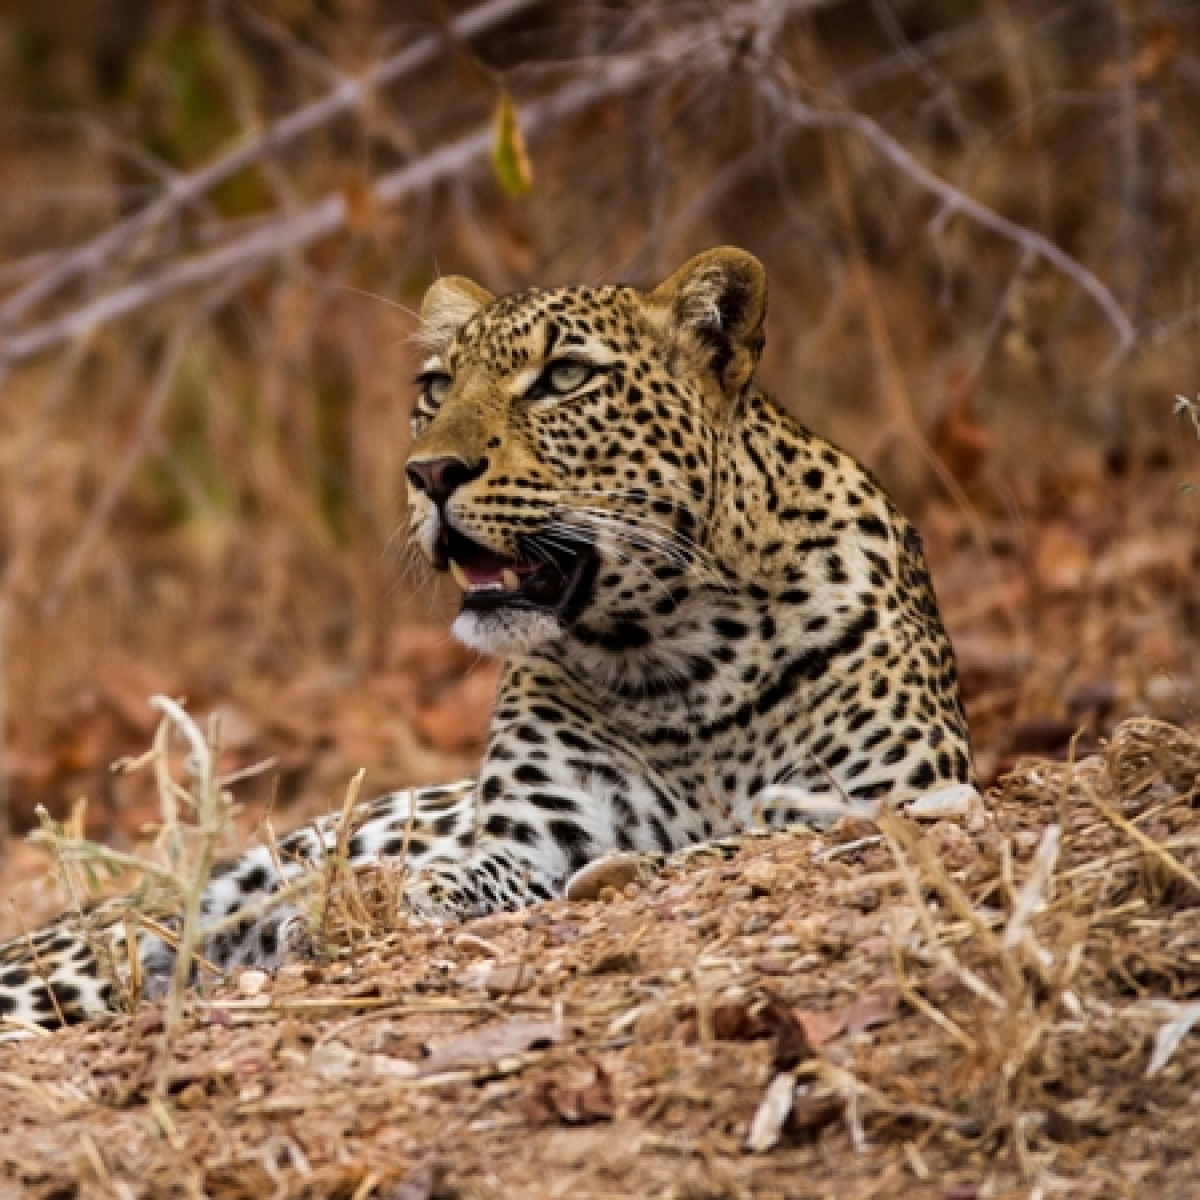 Amid COVID-19 outbreak; Maharashtra sees rise in poaching and wildlife crimes